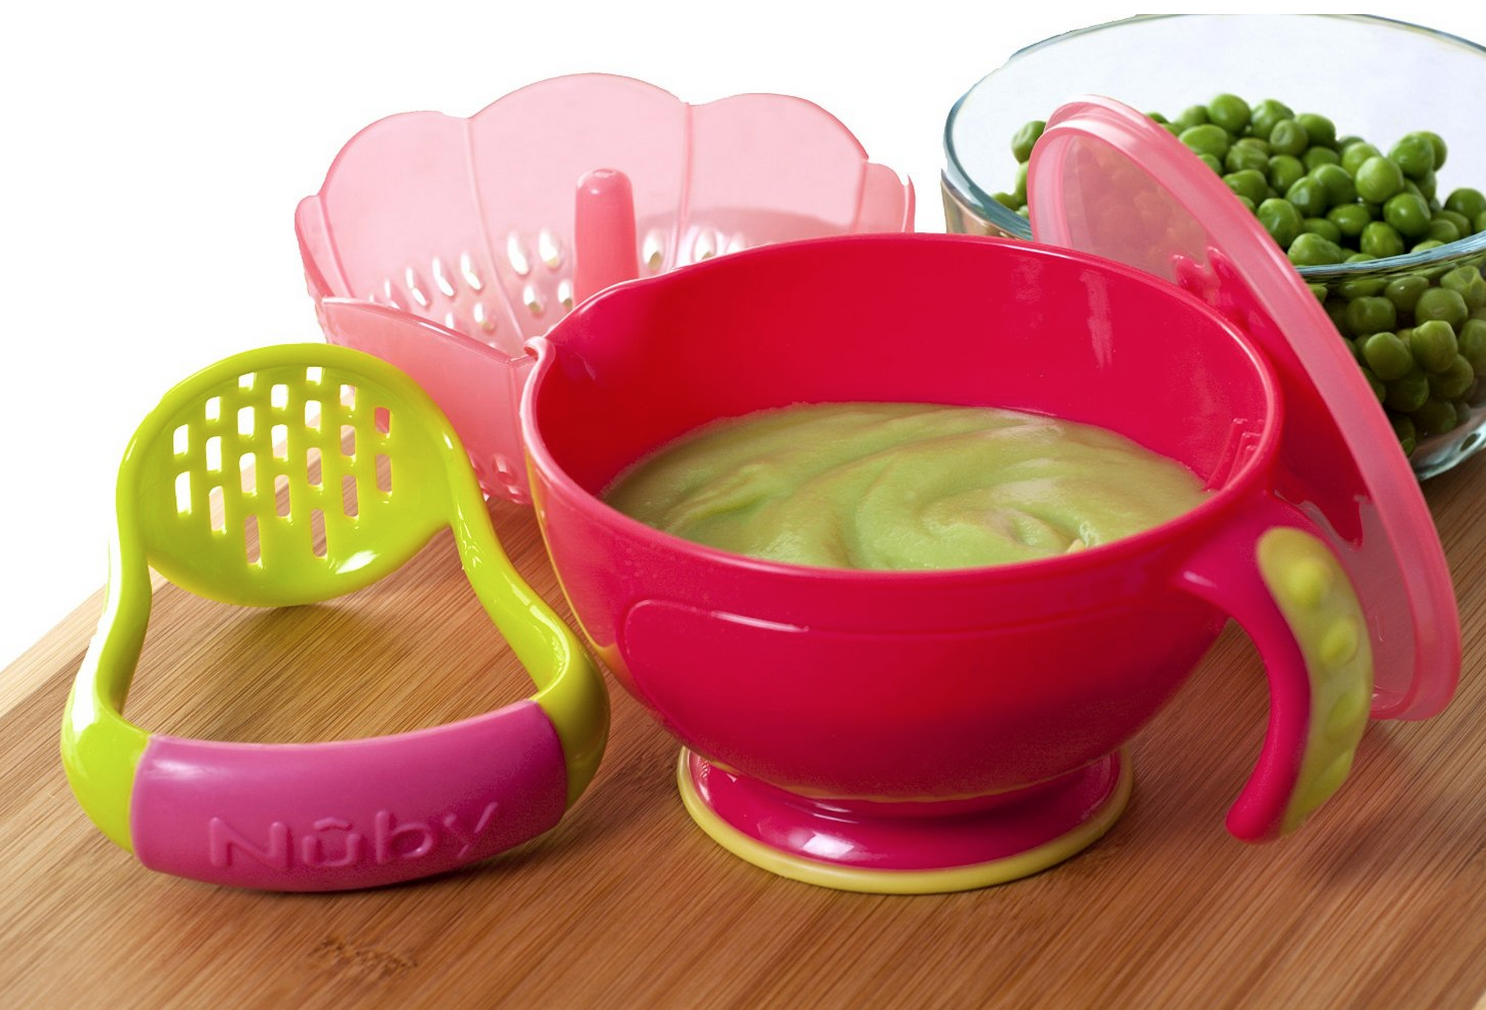 Nuby Garden Fresh Steam N' Mash Baby Food Prep Bowl and Food Masher Only $7.99 (Reg. $9.99!)